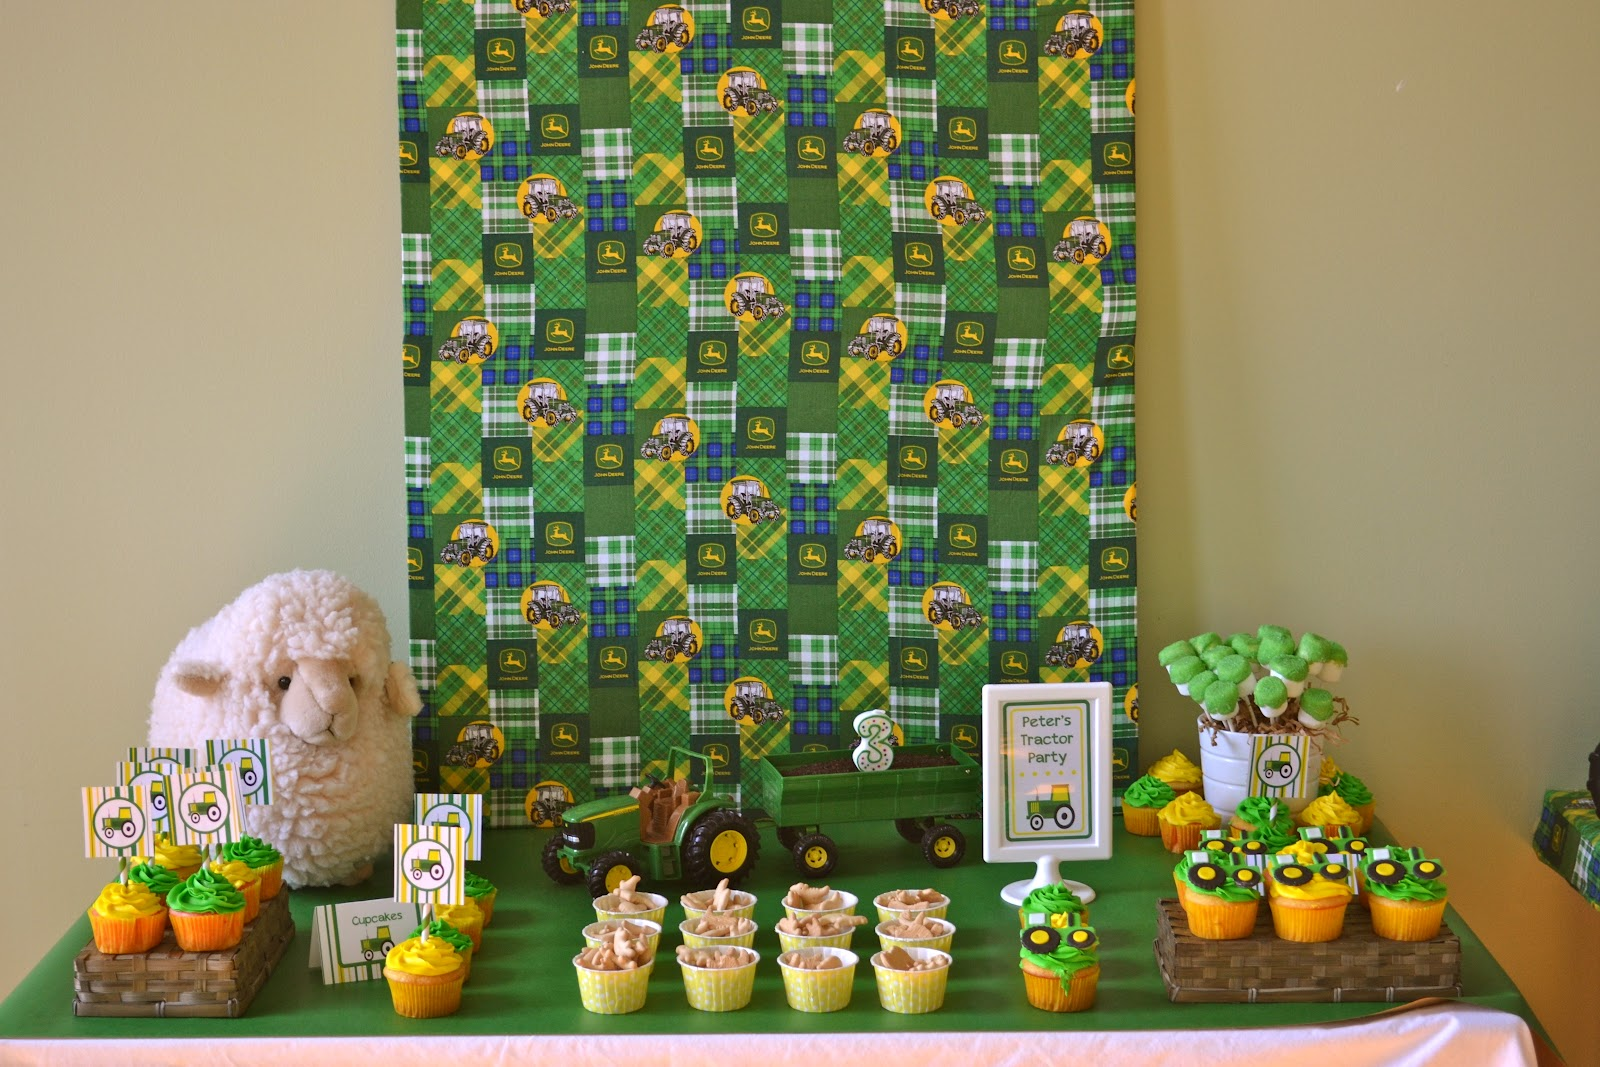 Live Smile Celebrate: John Deere Tractor Birthday Party